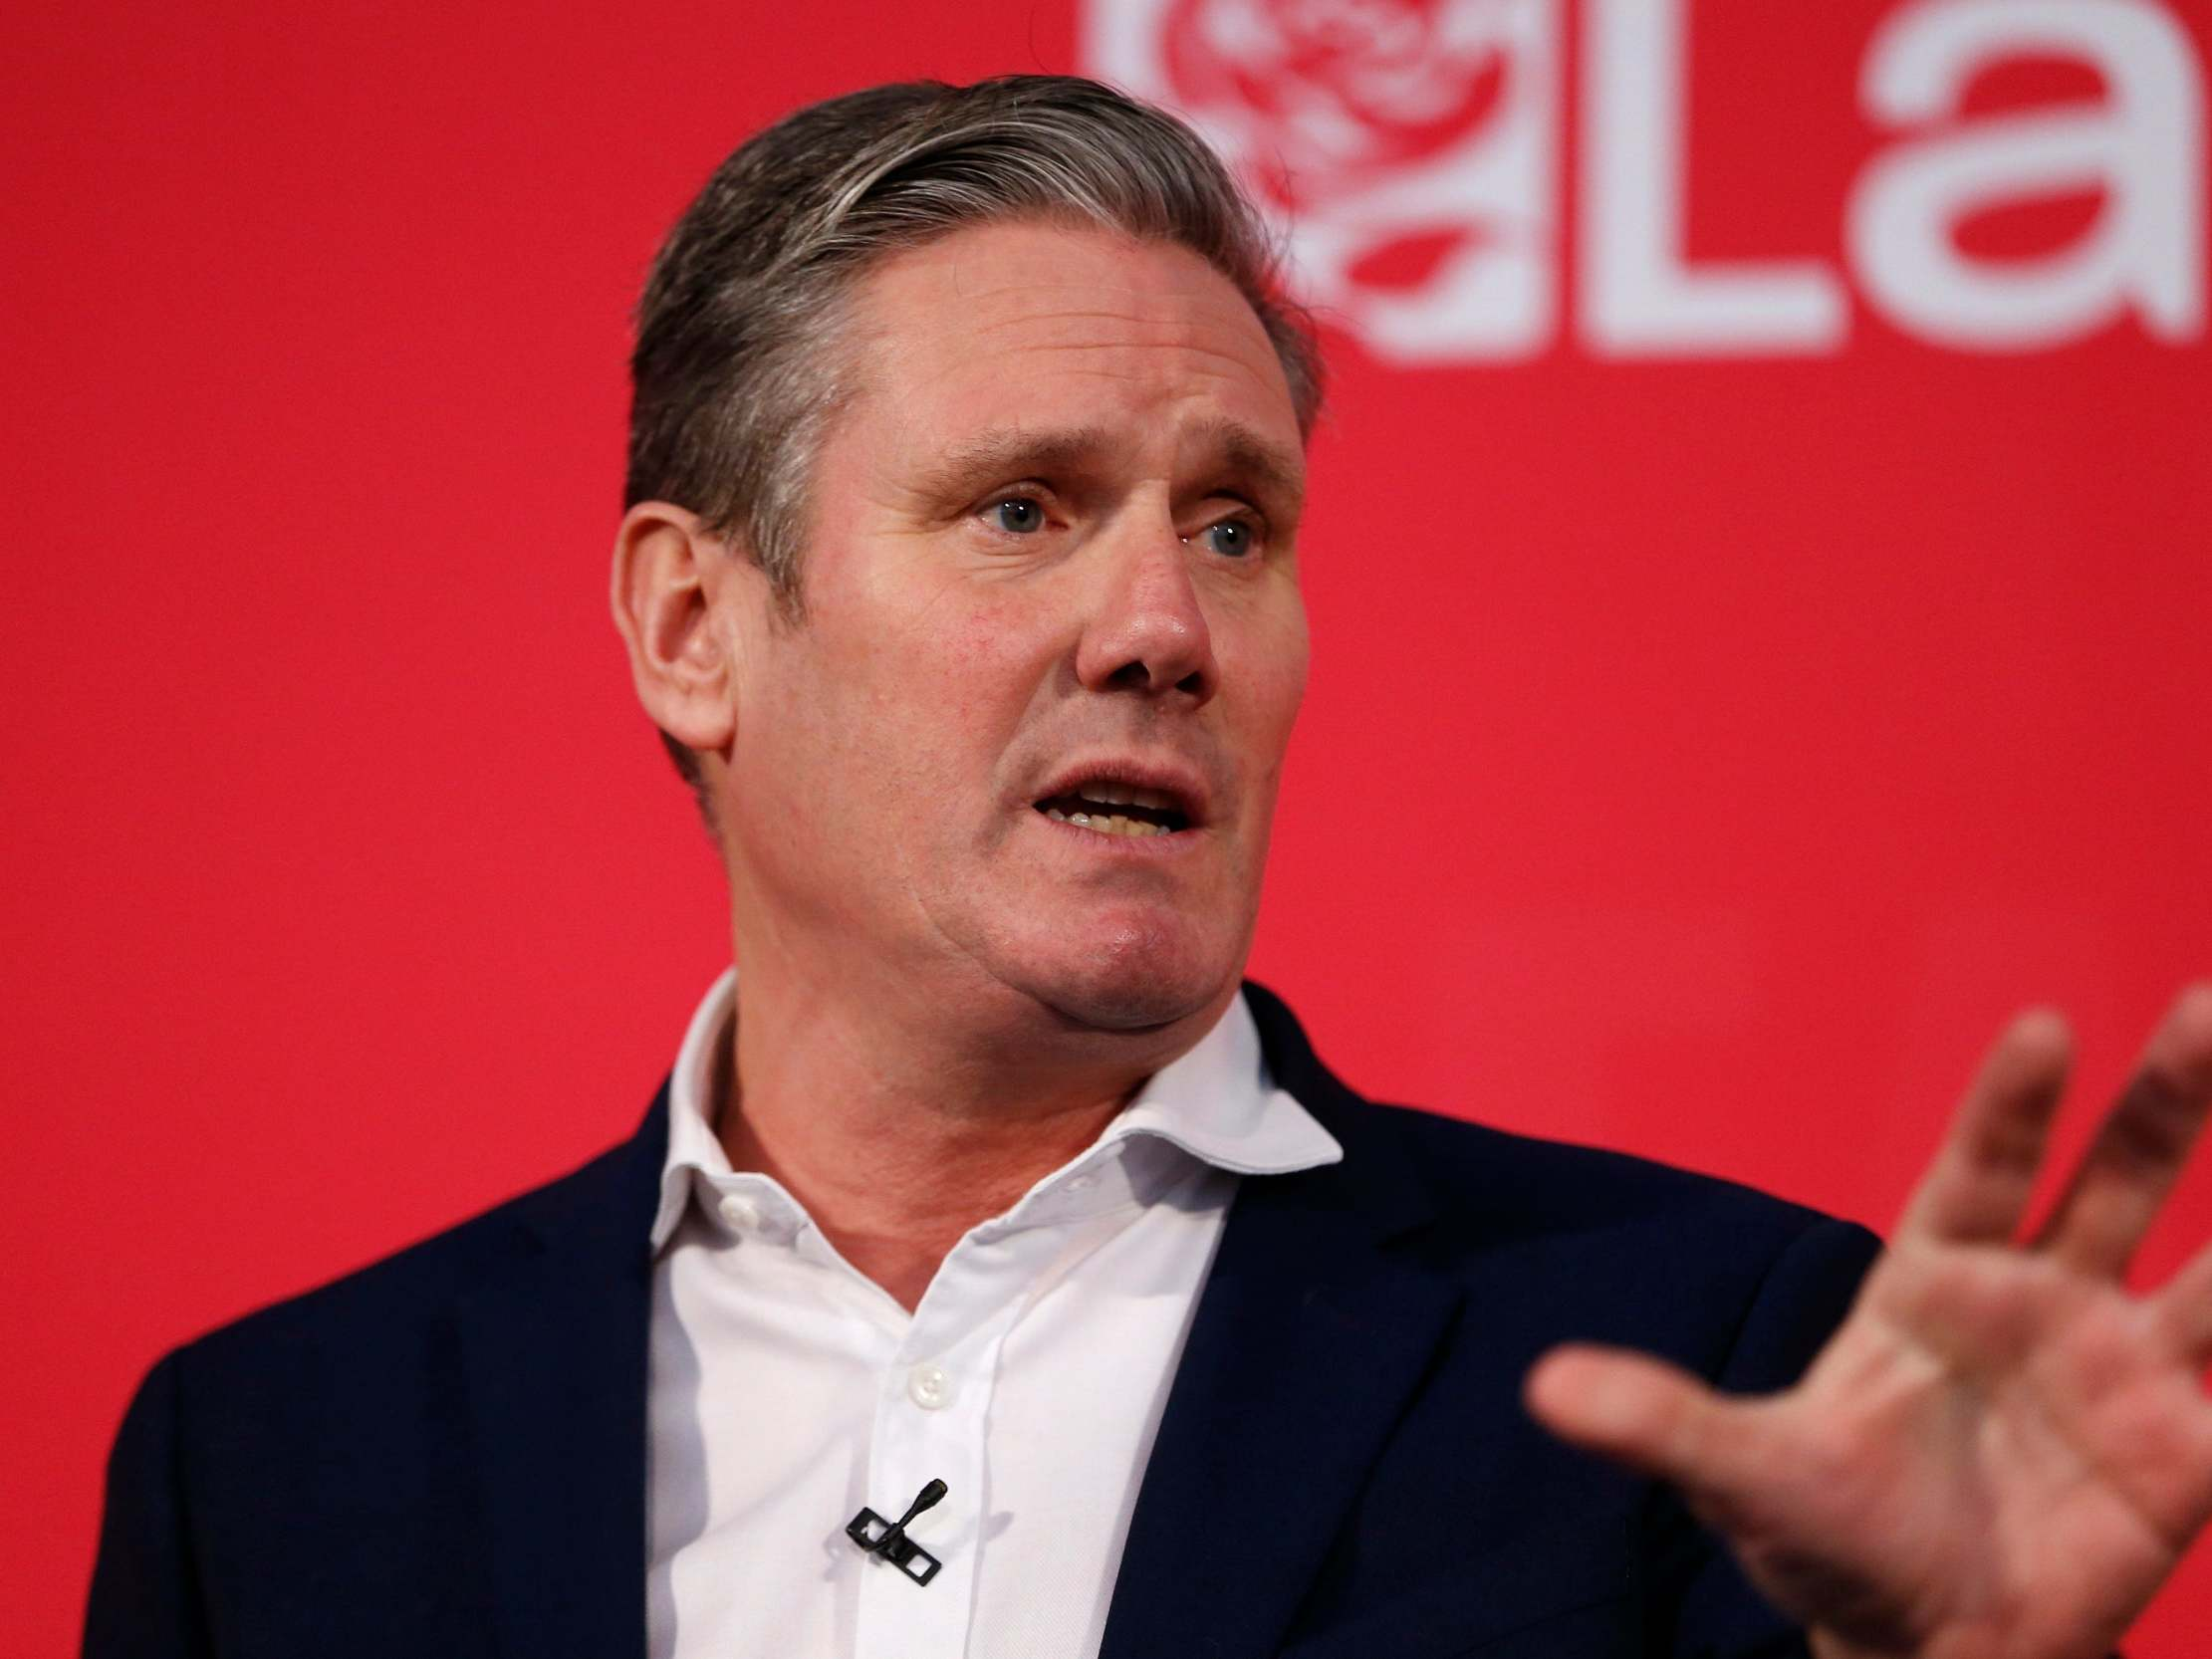 Keir Starmer: Our radical socialist tradition must remain at the heart of Labour